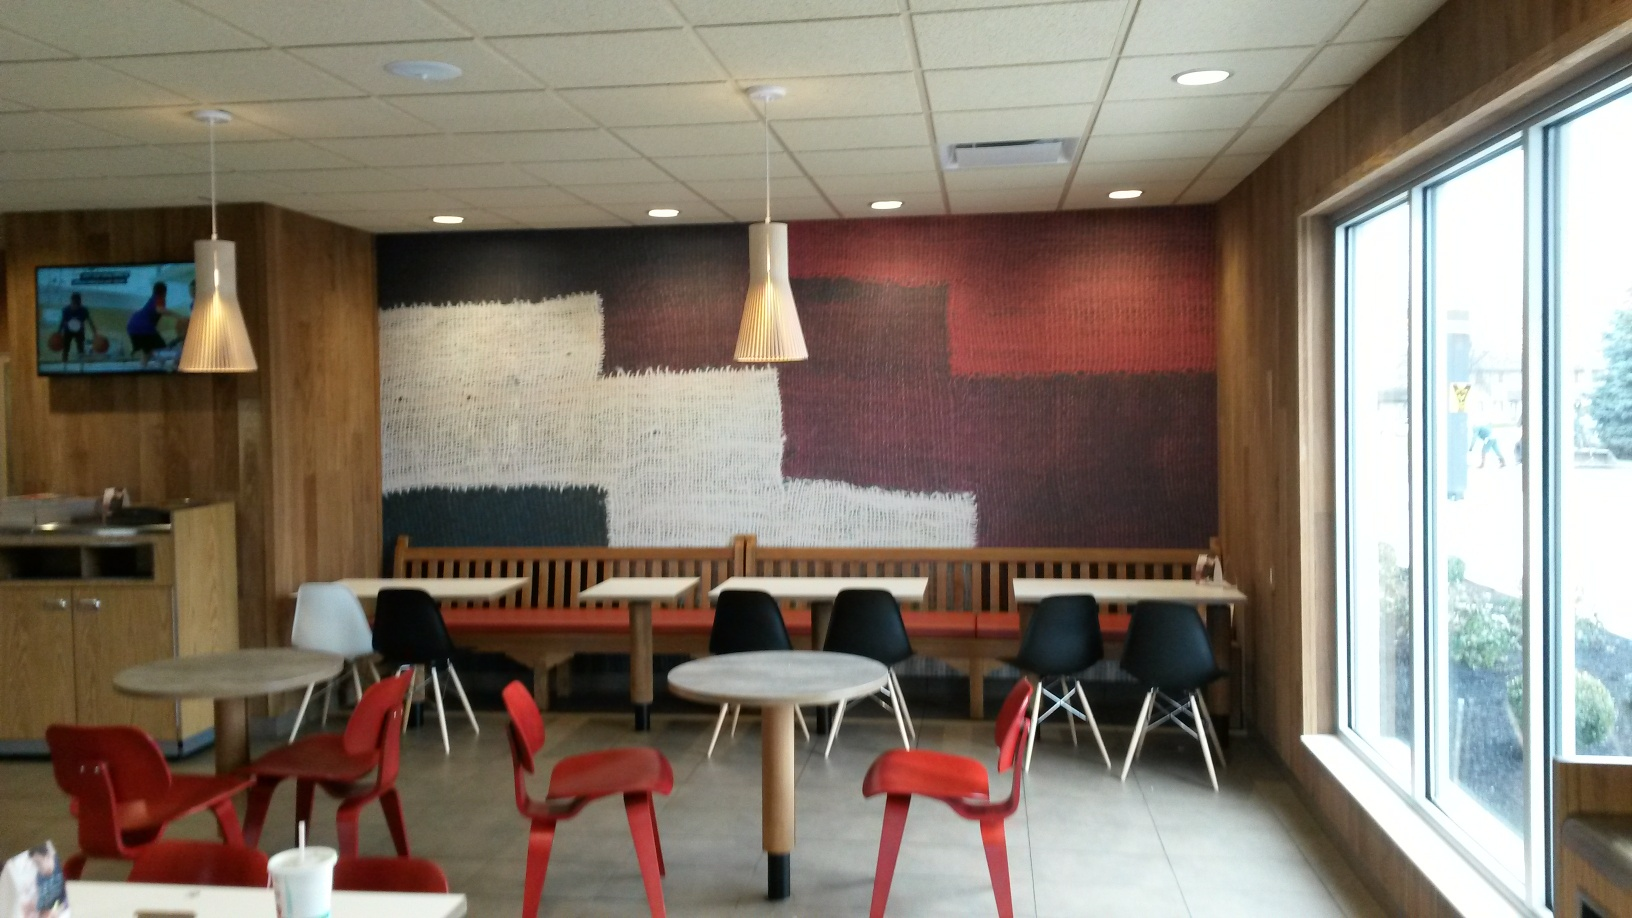 McDonald's Busyrus Ohio